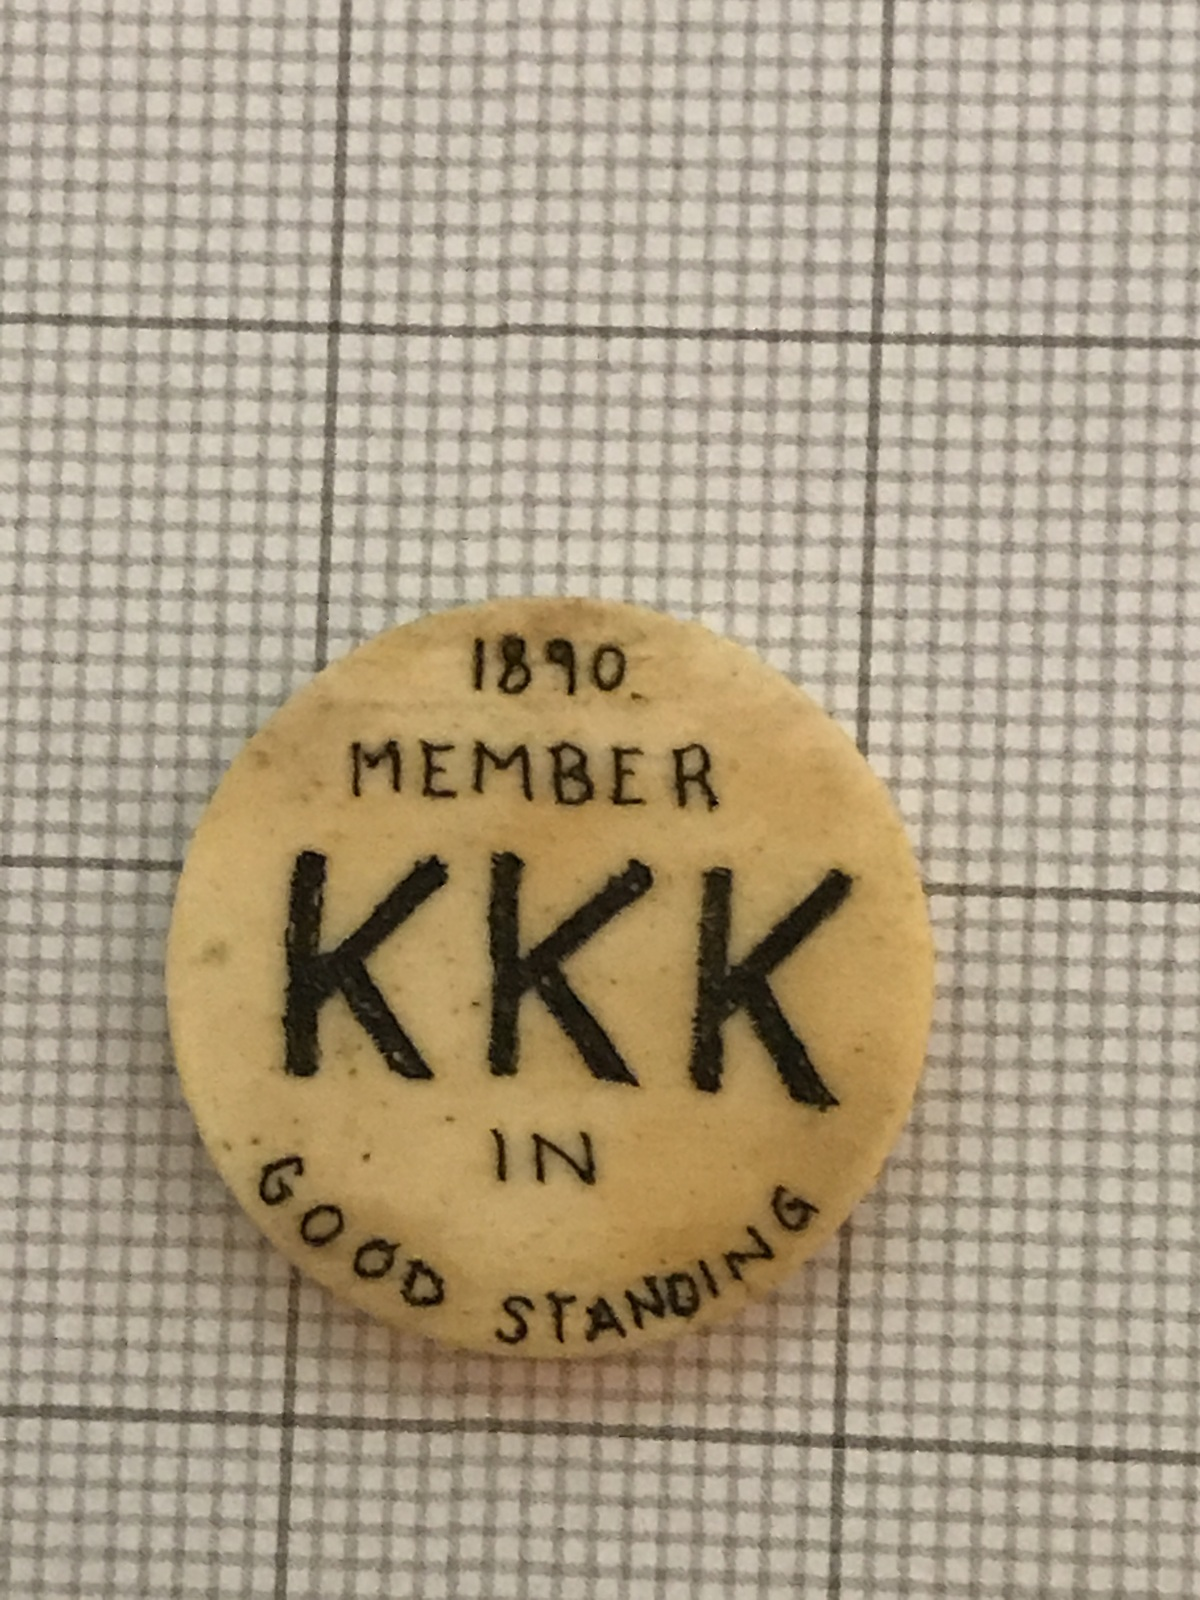 Primary image for Antique 1890 Bone KKK Member Token Good Standing